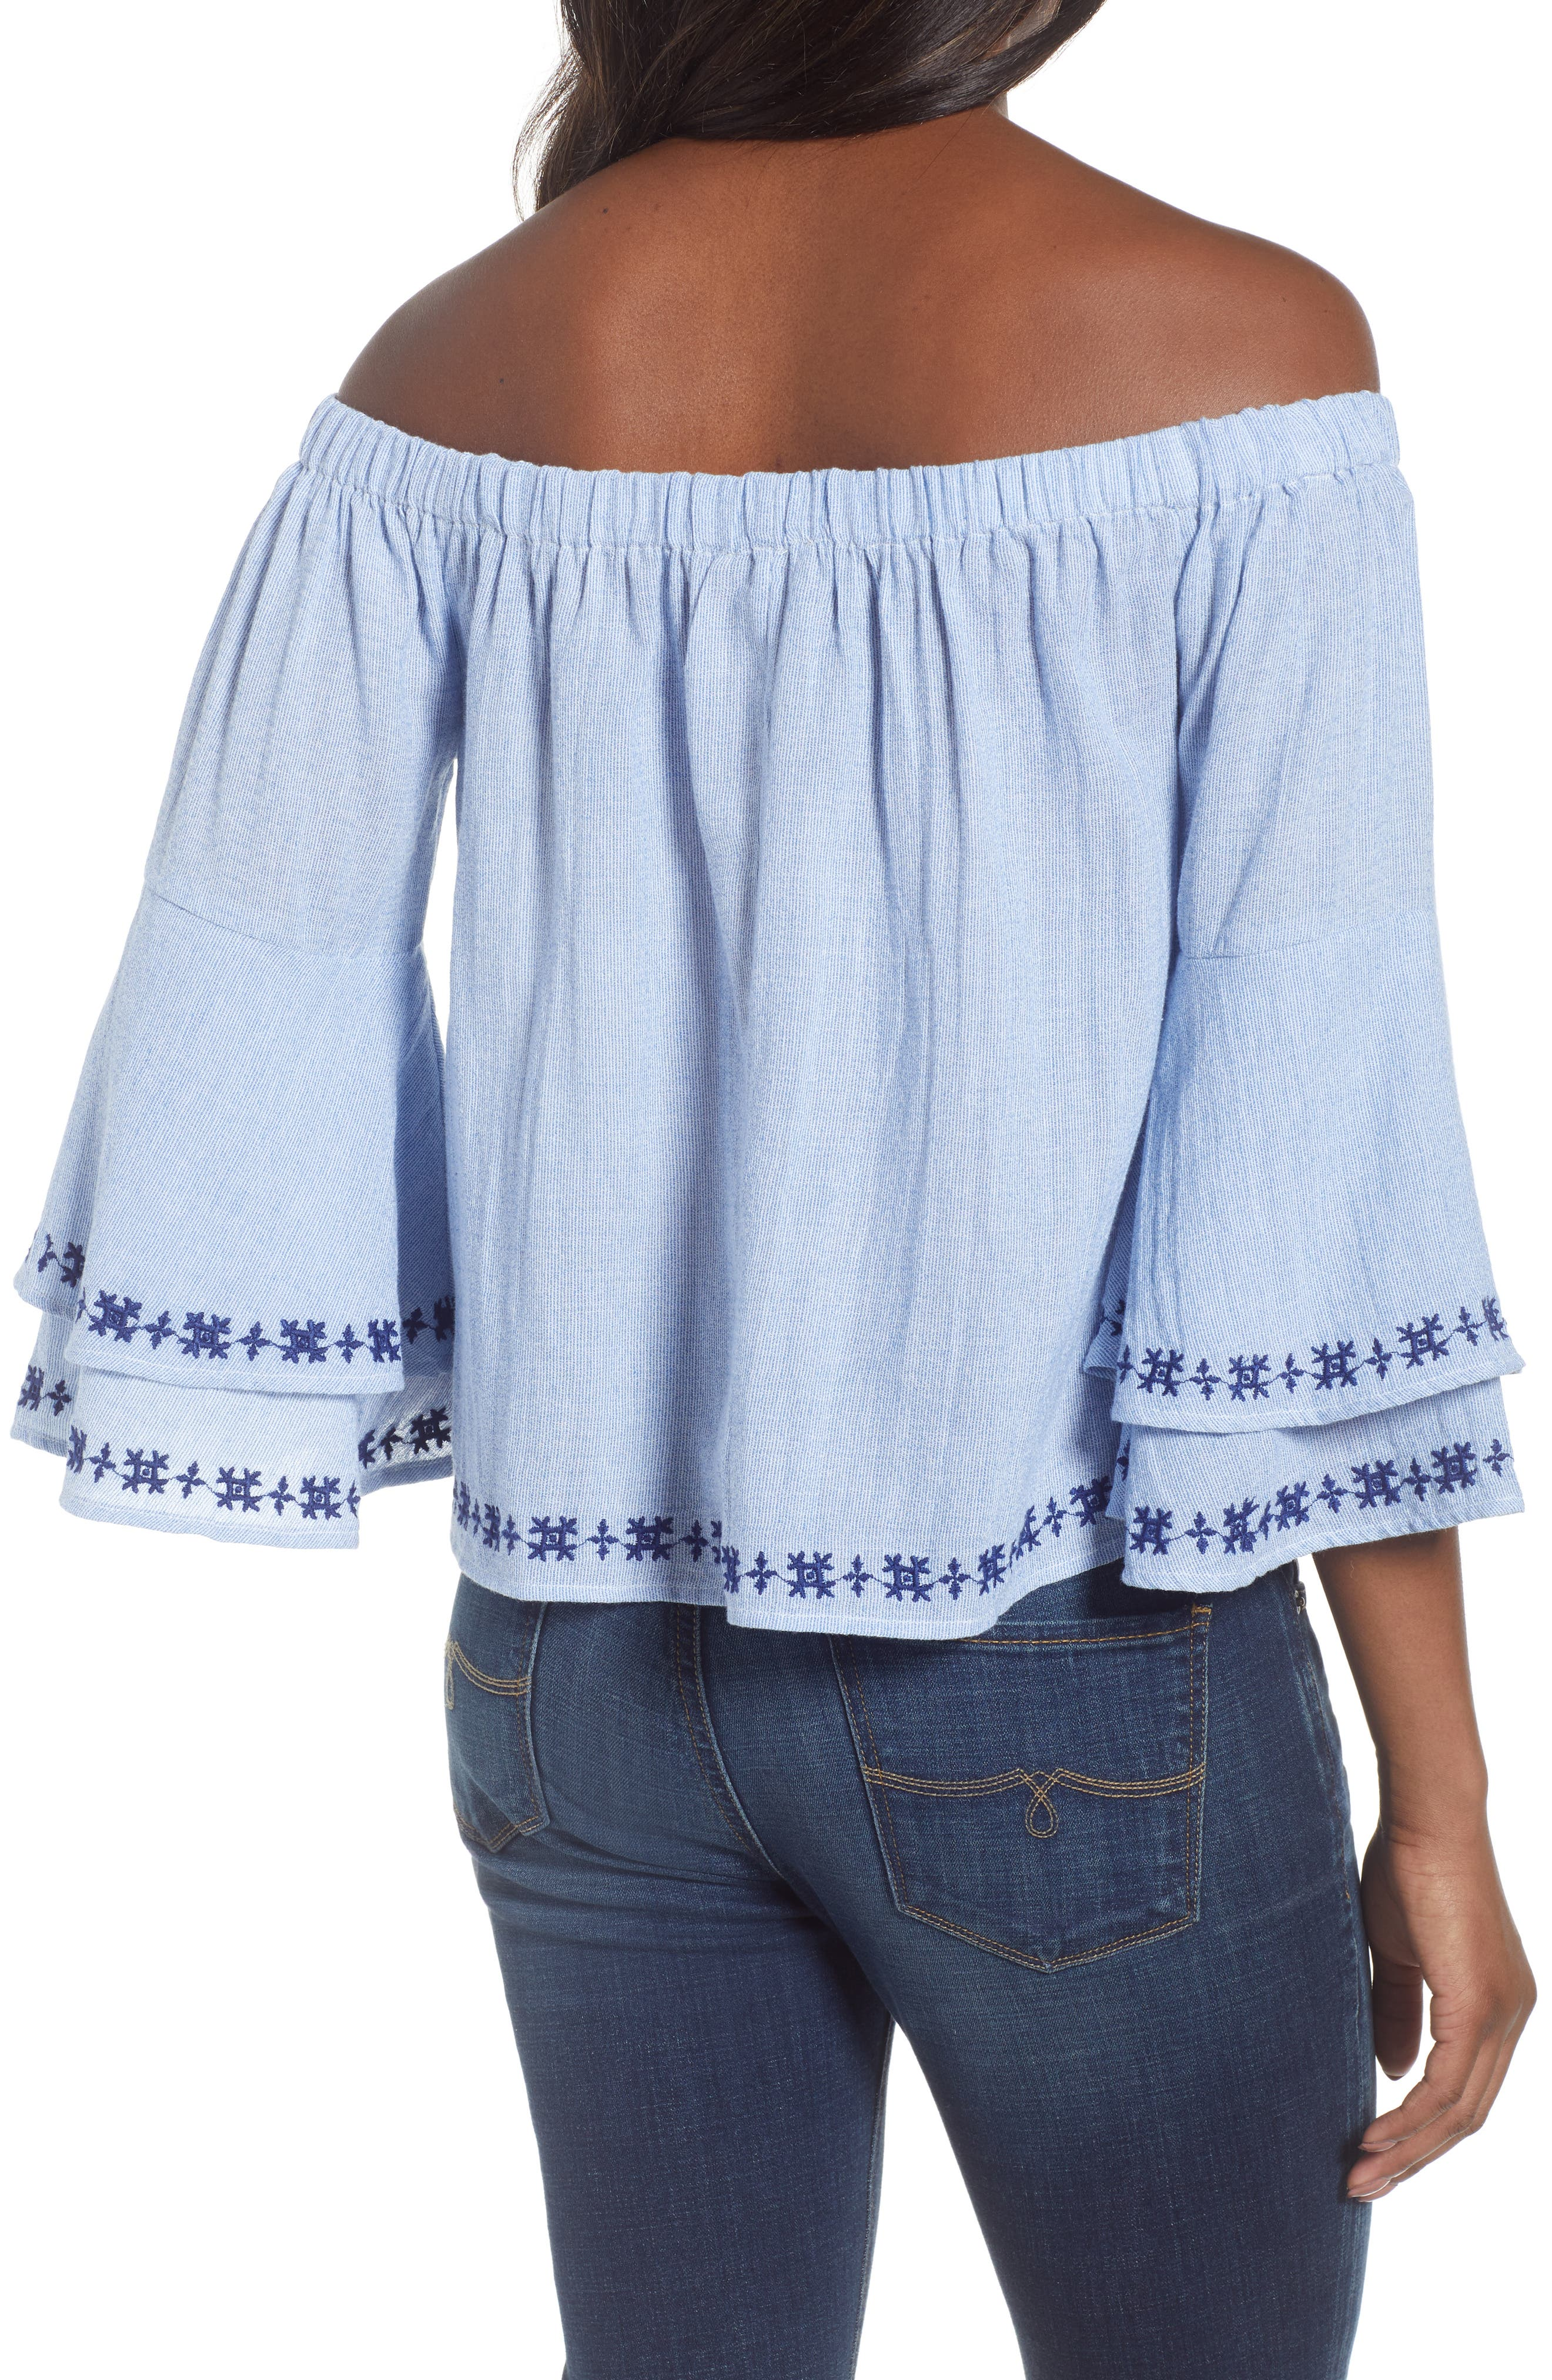 Pinstriped Embroidered Off the Shoulder Cotton Top,                             Alternate thumbnail 2, color,                             461